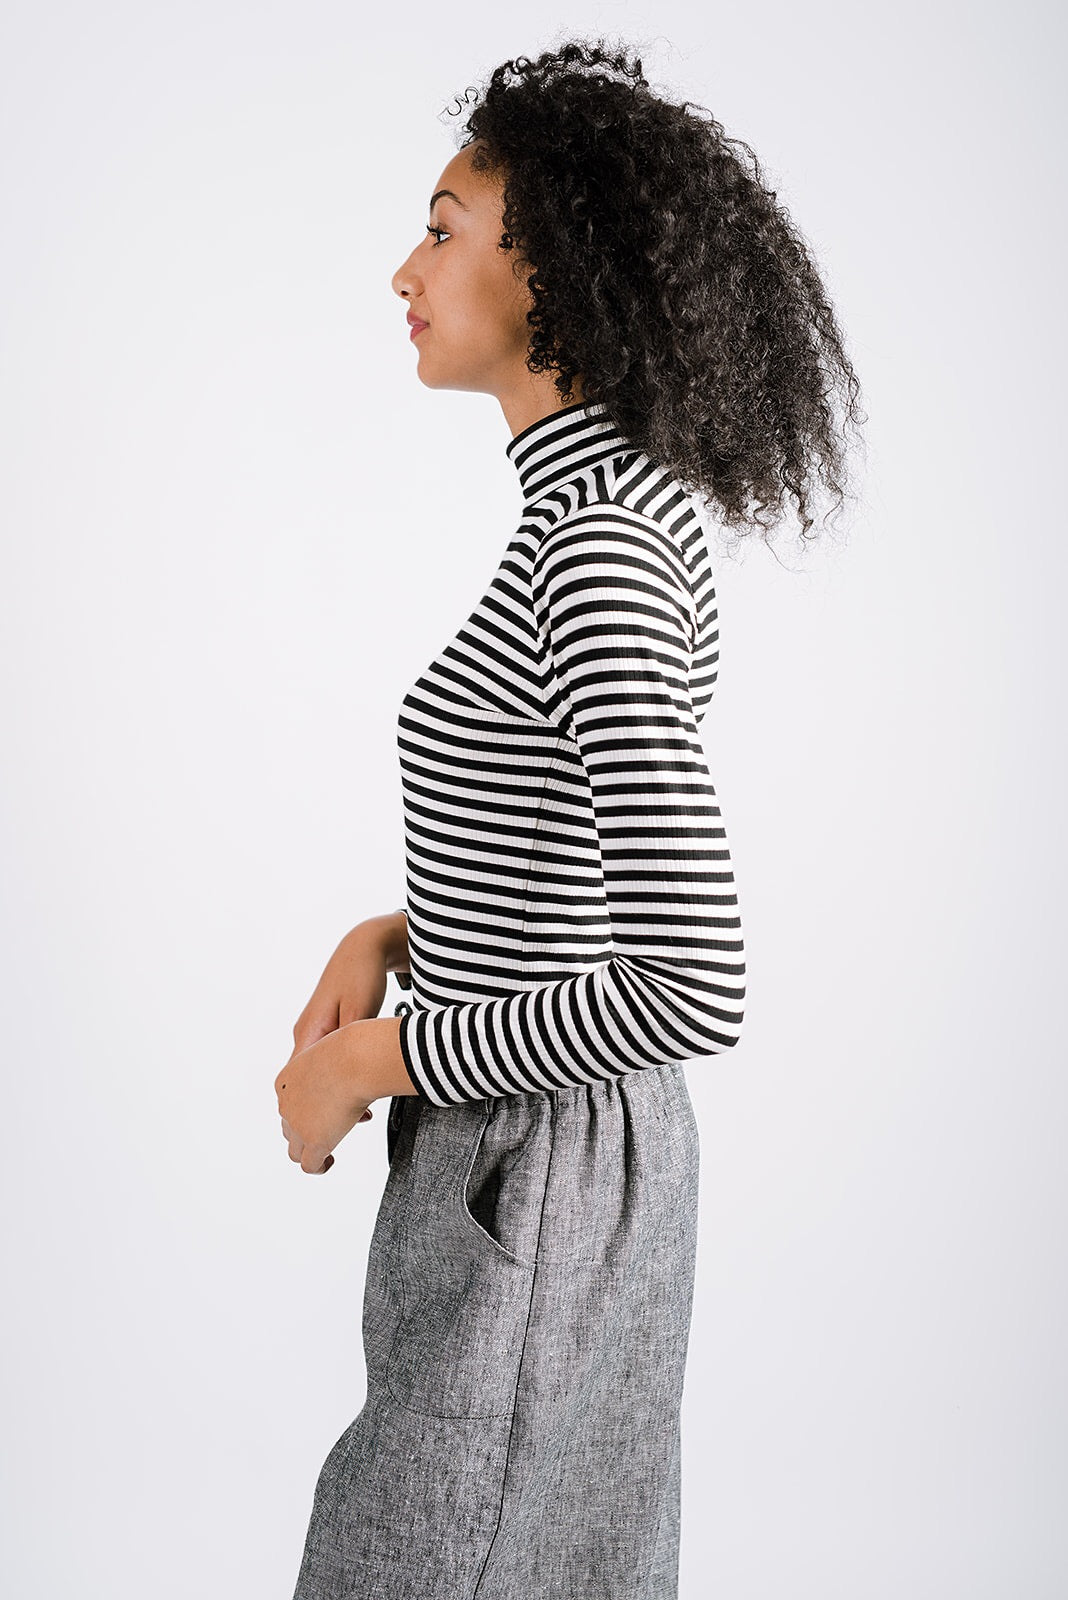 Rhoda Mock Neck | City Stripe Black TEMPORARILY SOLD OUT